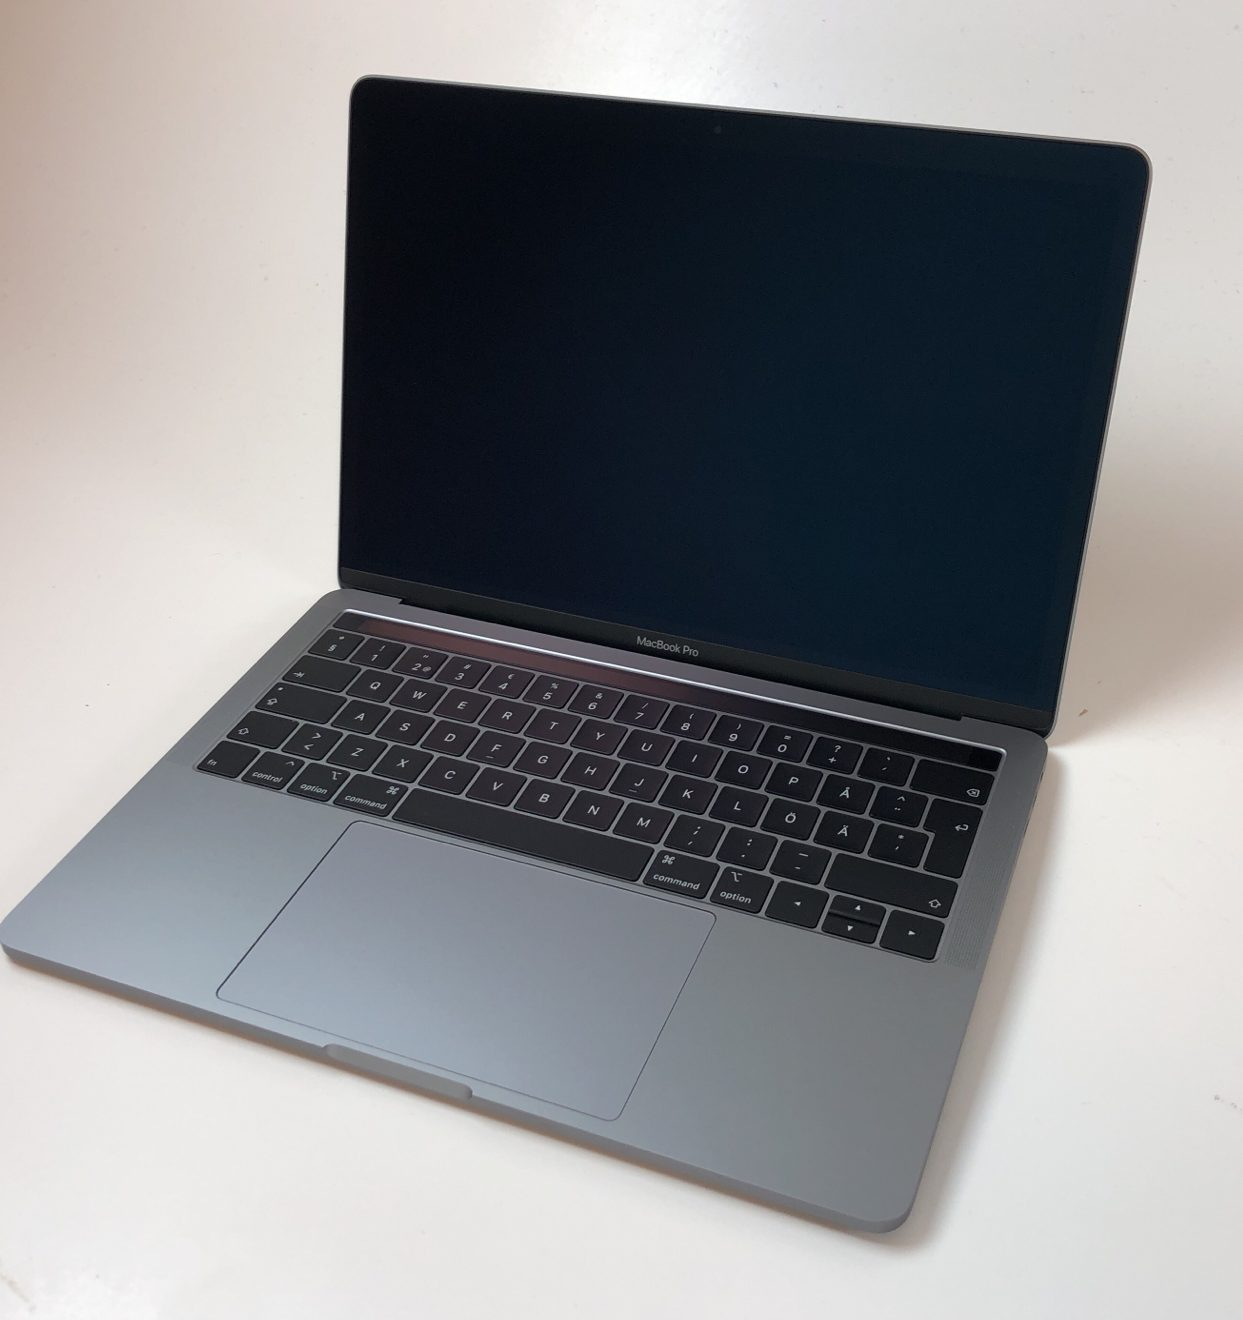 "MacBook Pro 13"" 4TBT Mid 2018 (Intel Quad-Core i5 2.3 GHz 8 GB RAM 256 GB SSD), Space Gray, Intel Quad-Core i5 2.3 GHz, 8 GB RAM, 256 GB SSD, Kuva 1"